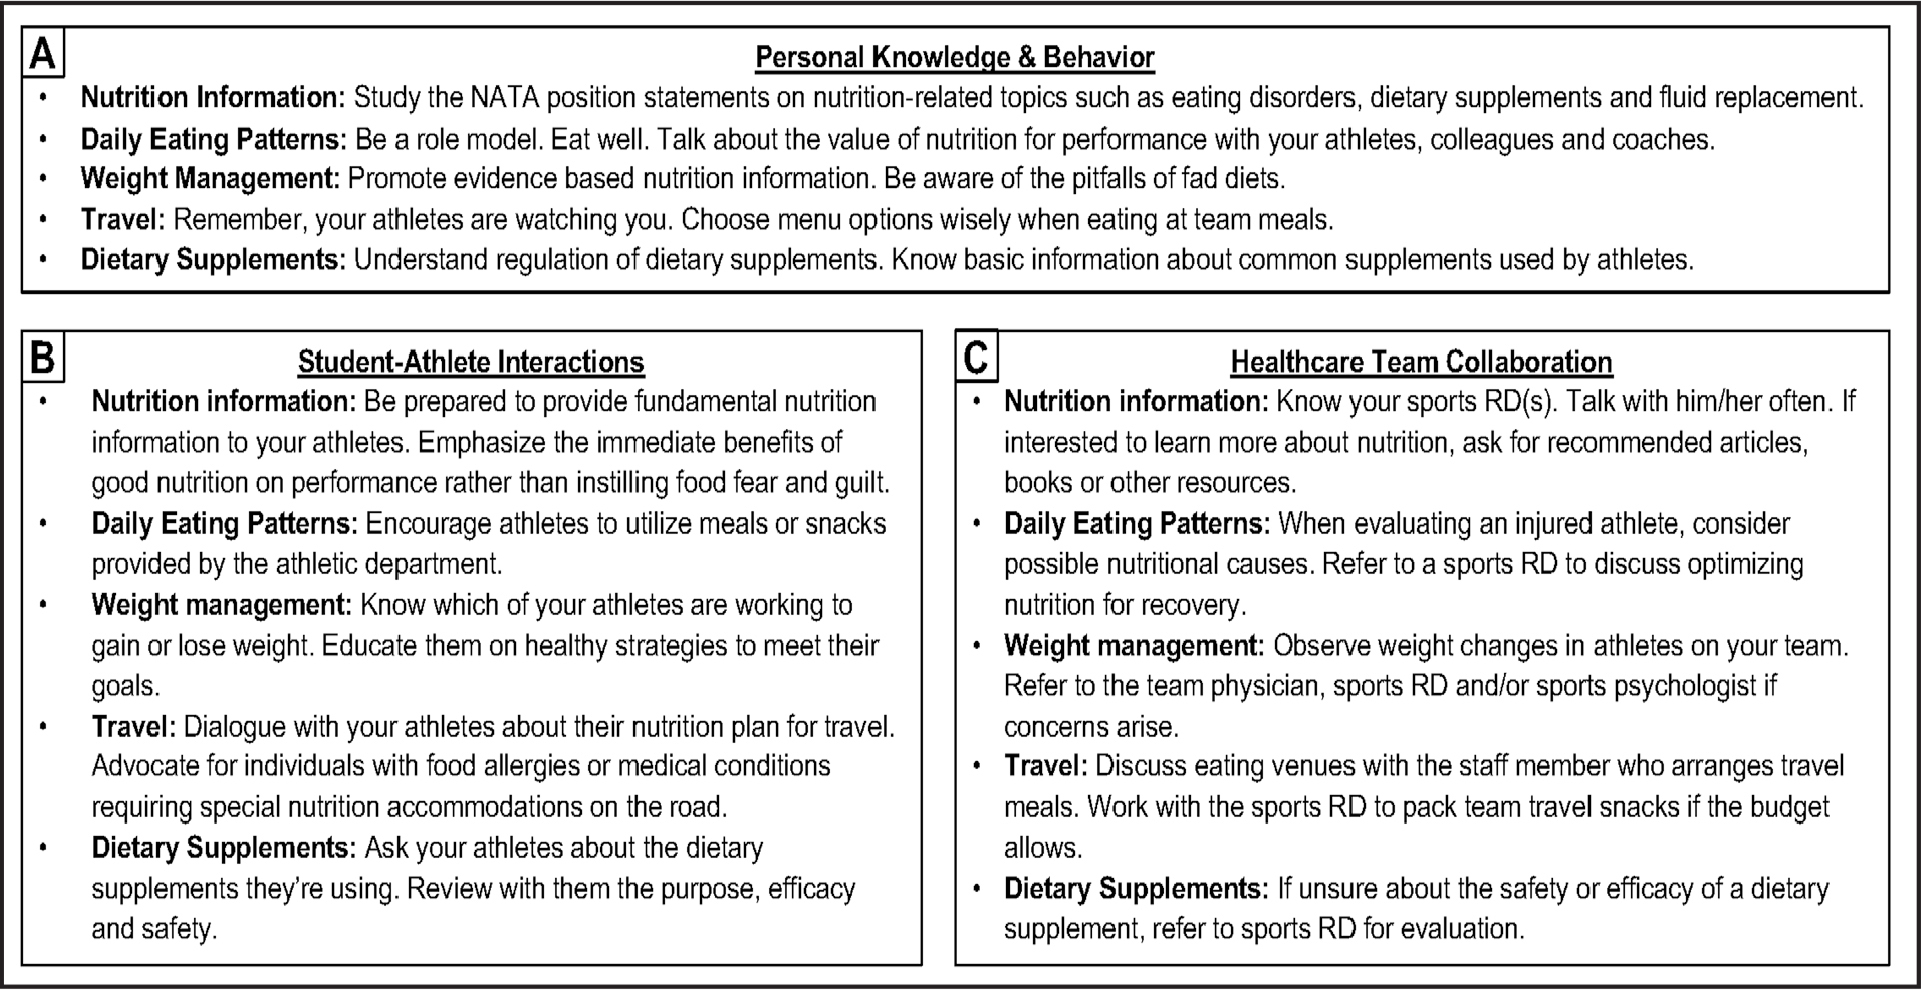 Practice pearls for nutrition-minded athletic trainers. (A) Being a nutrition champion begins with a personal commitment to learning the evidenced-based principles and modeling them to athletes. (B) Engaging in intentional conversations about nutrition with athletes can help to understand their motivations and barriers to eating for performance. (C) Because of awareness of the needs of athletes and the services provided by professional colleagues, athletic trainers can facilitate referrals for individual attention when indicated. NATA = National Athletic Trainers' Association; RD = registered dietitian